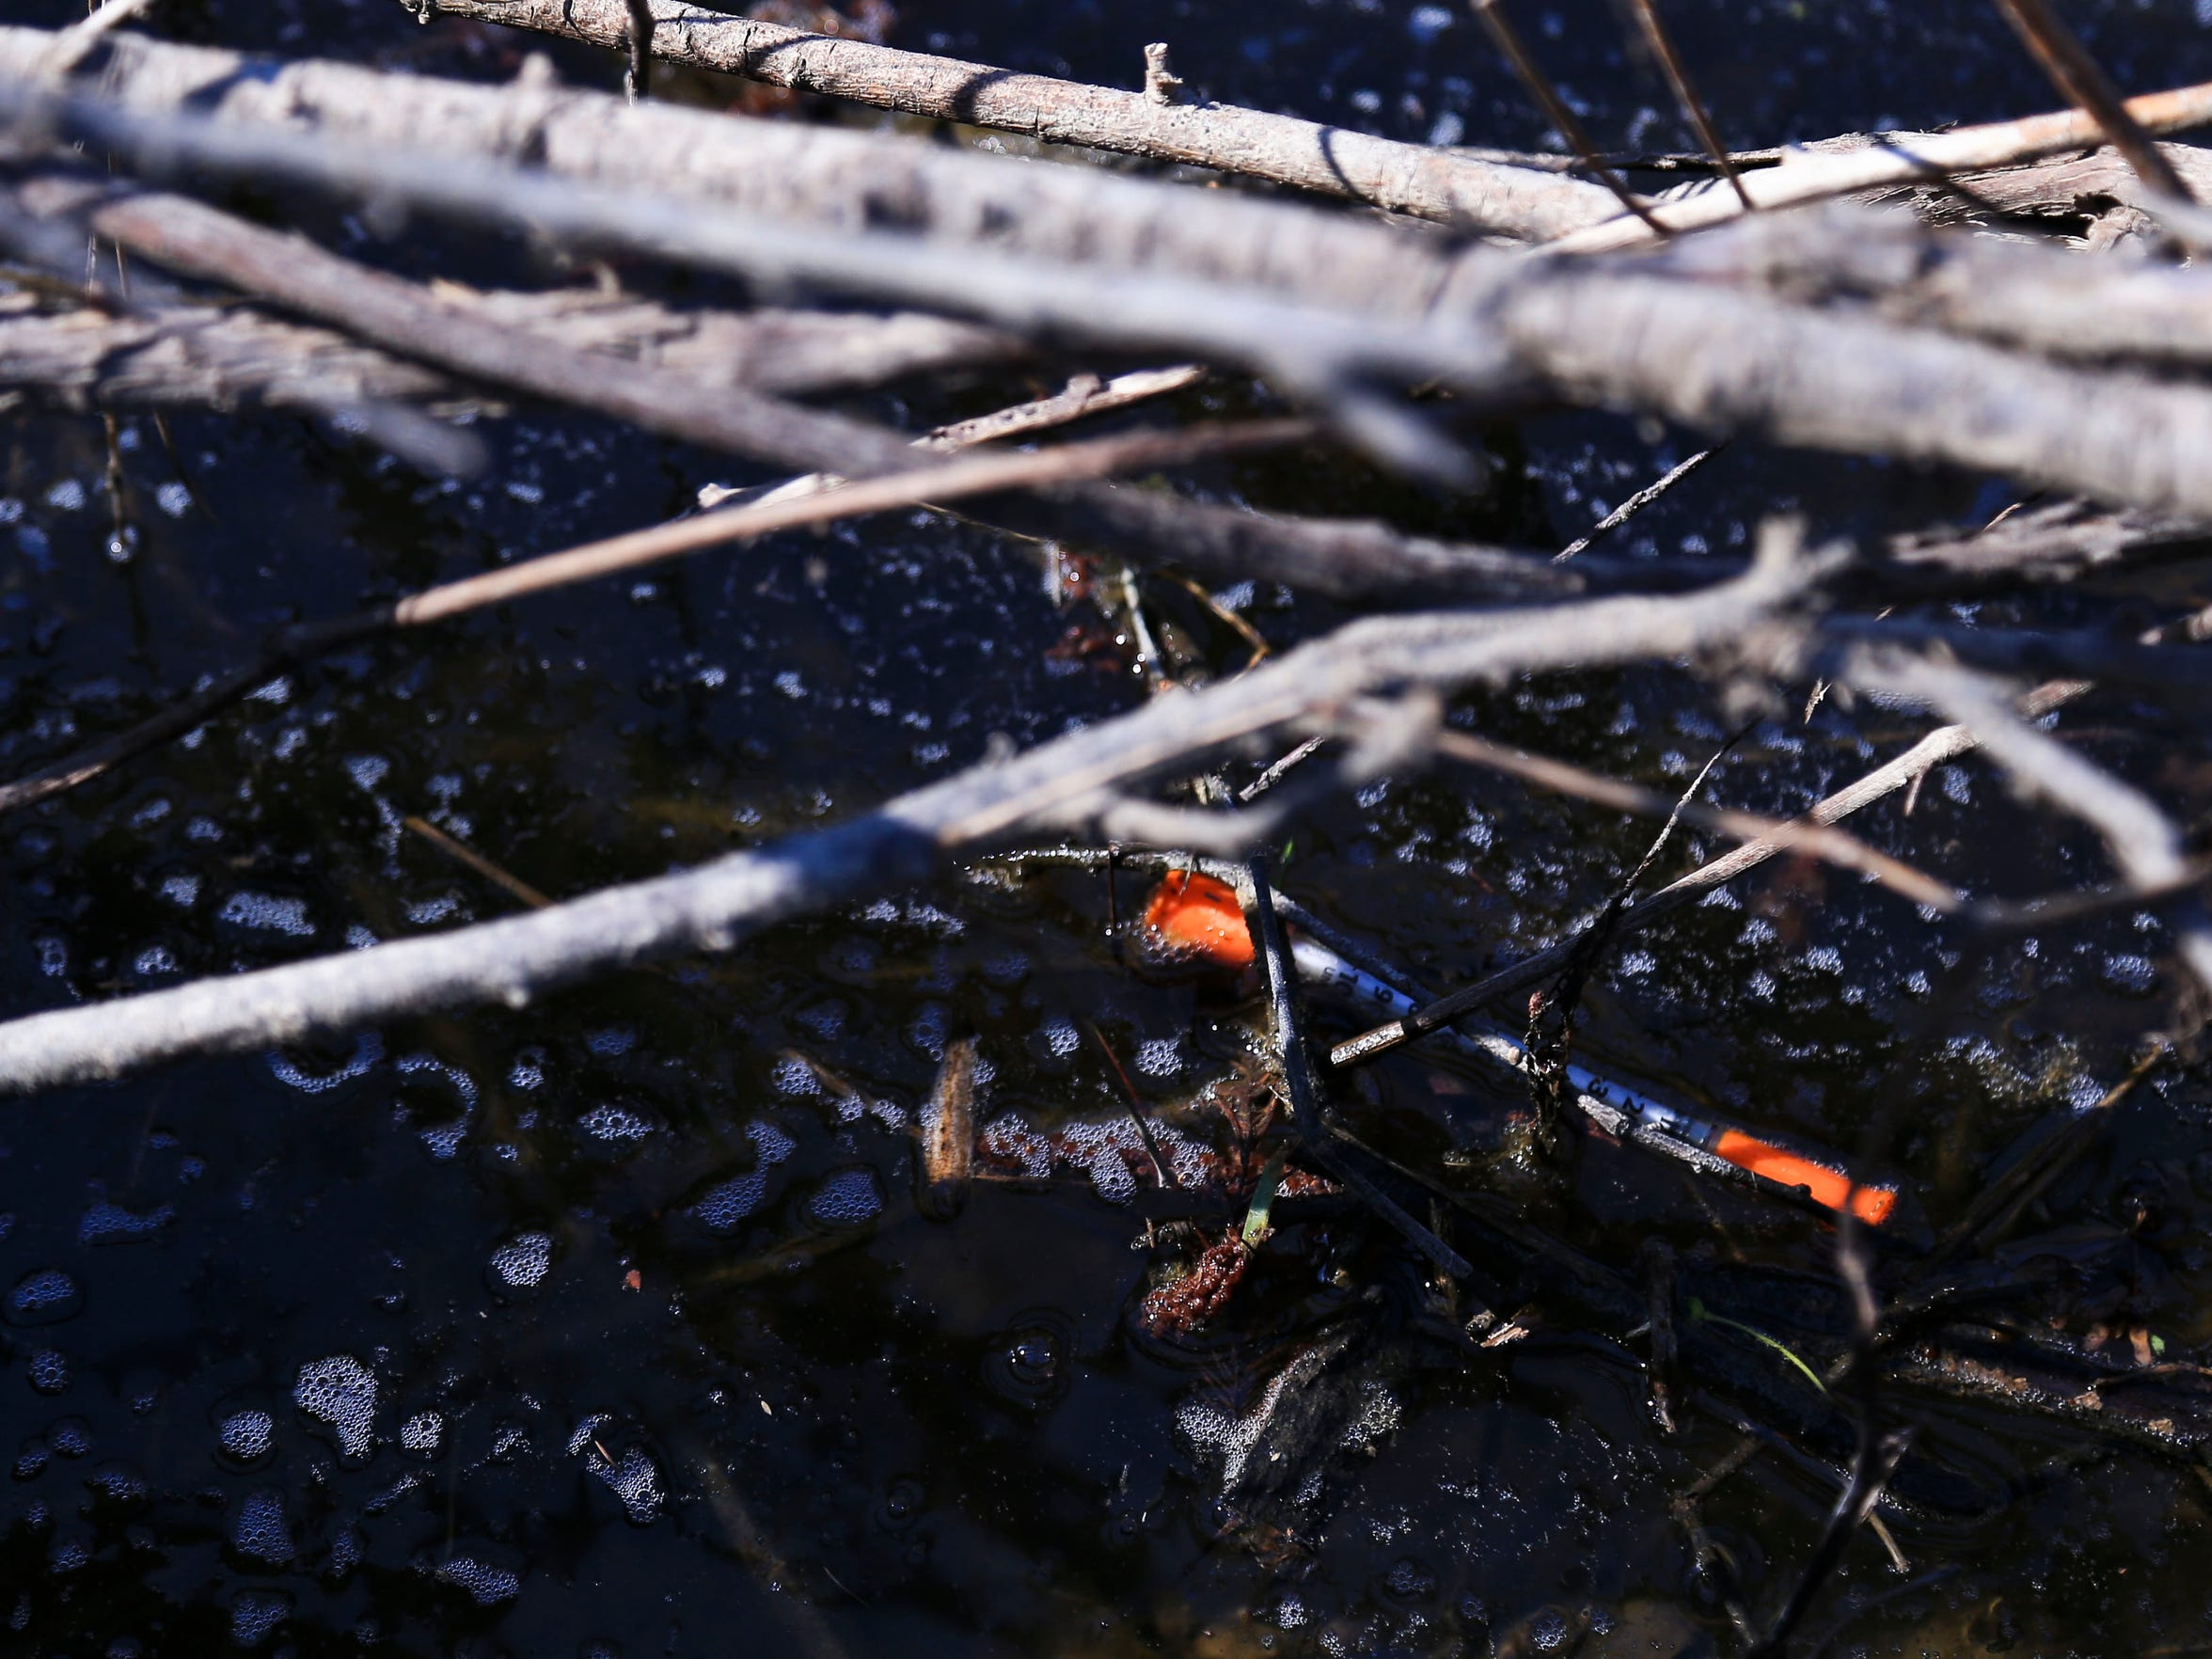 A used needle floats in a drainage ditch near Mann